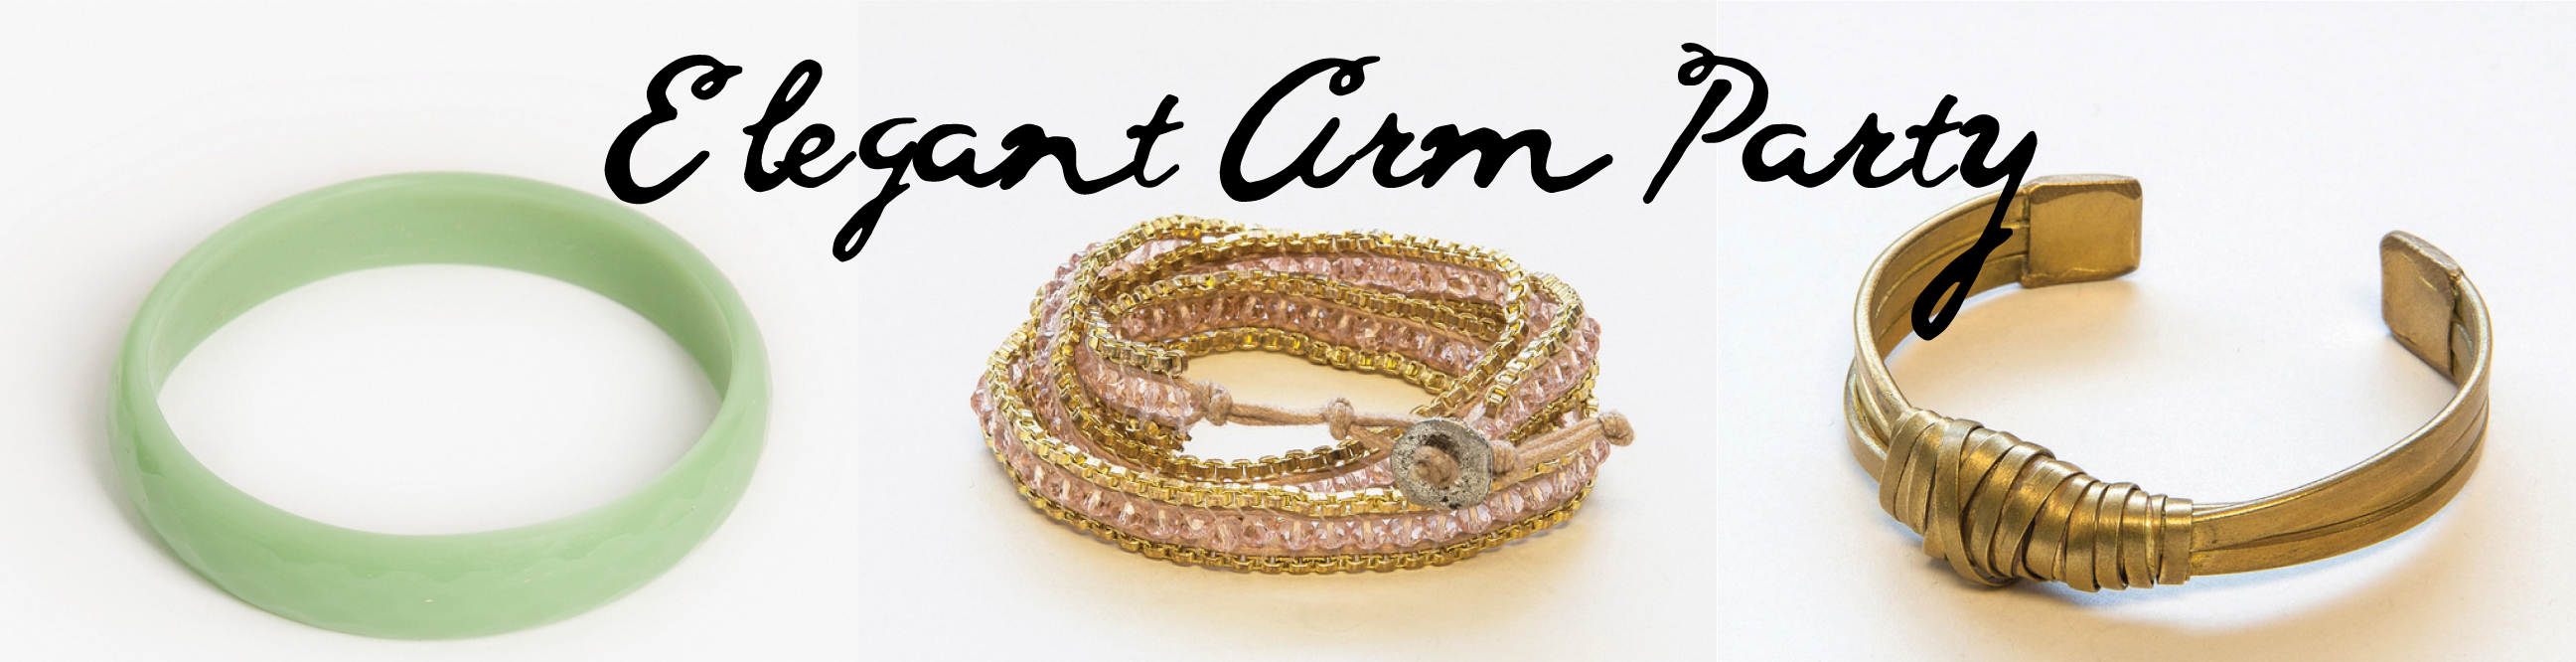 wear it wednesday elegant arm party by the creative jayne